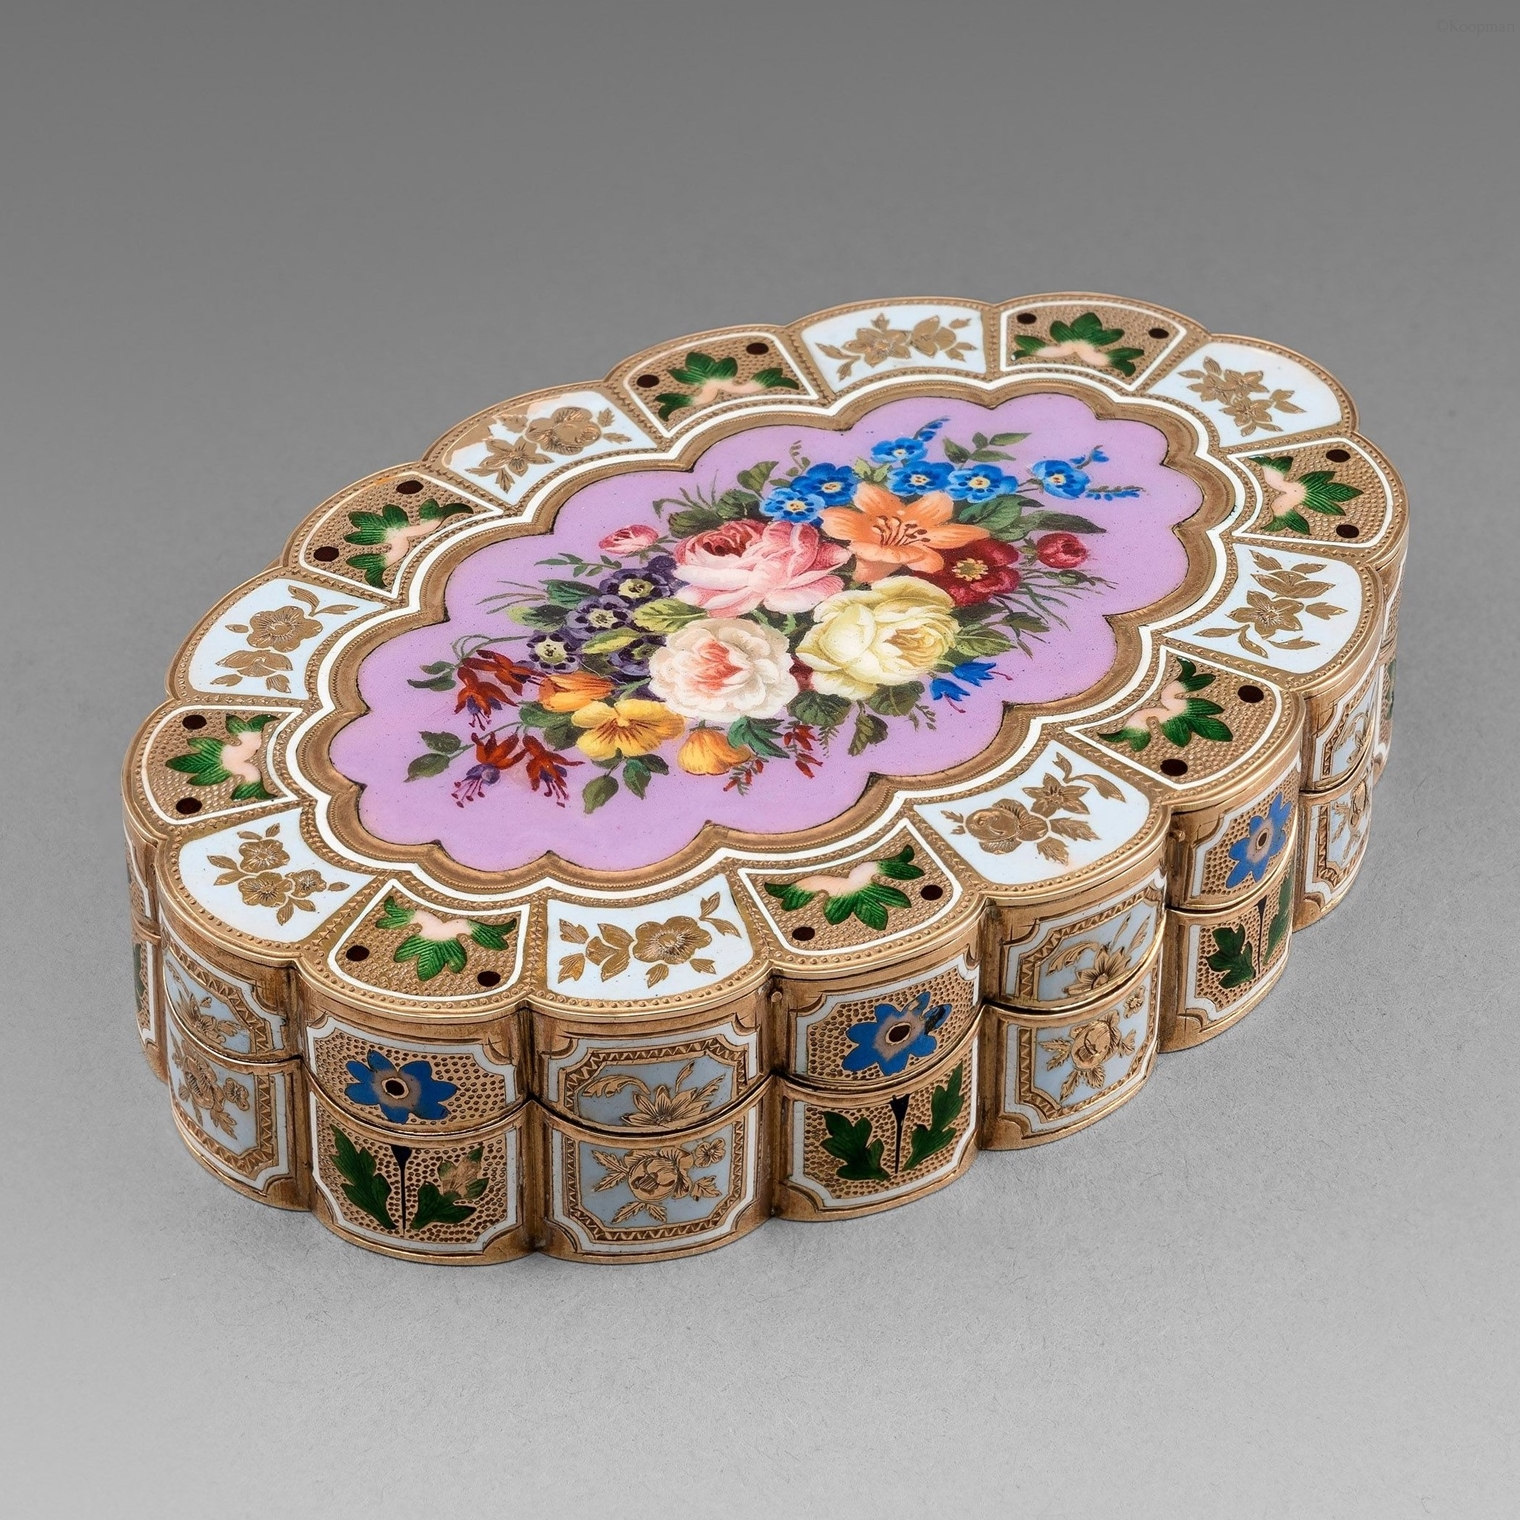 A Swiss 19th Century Gold & Enamel Box